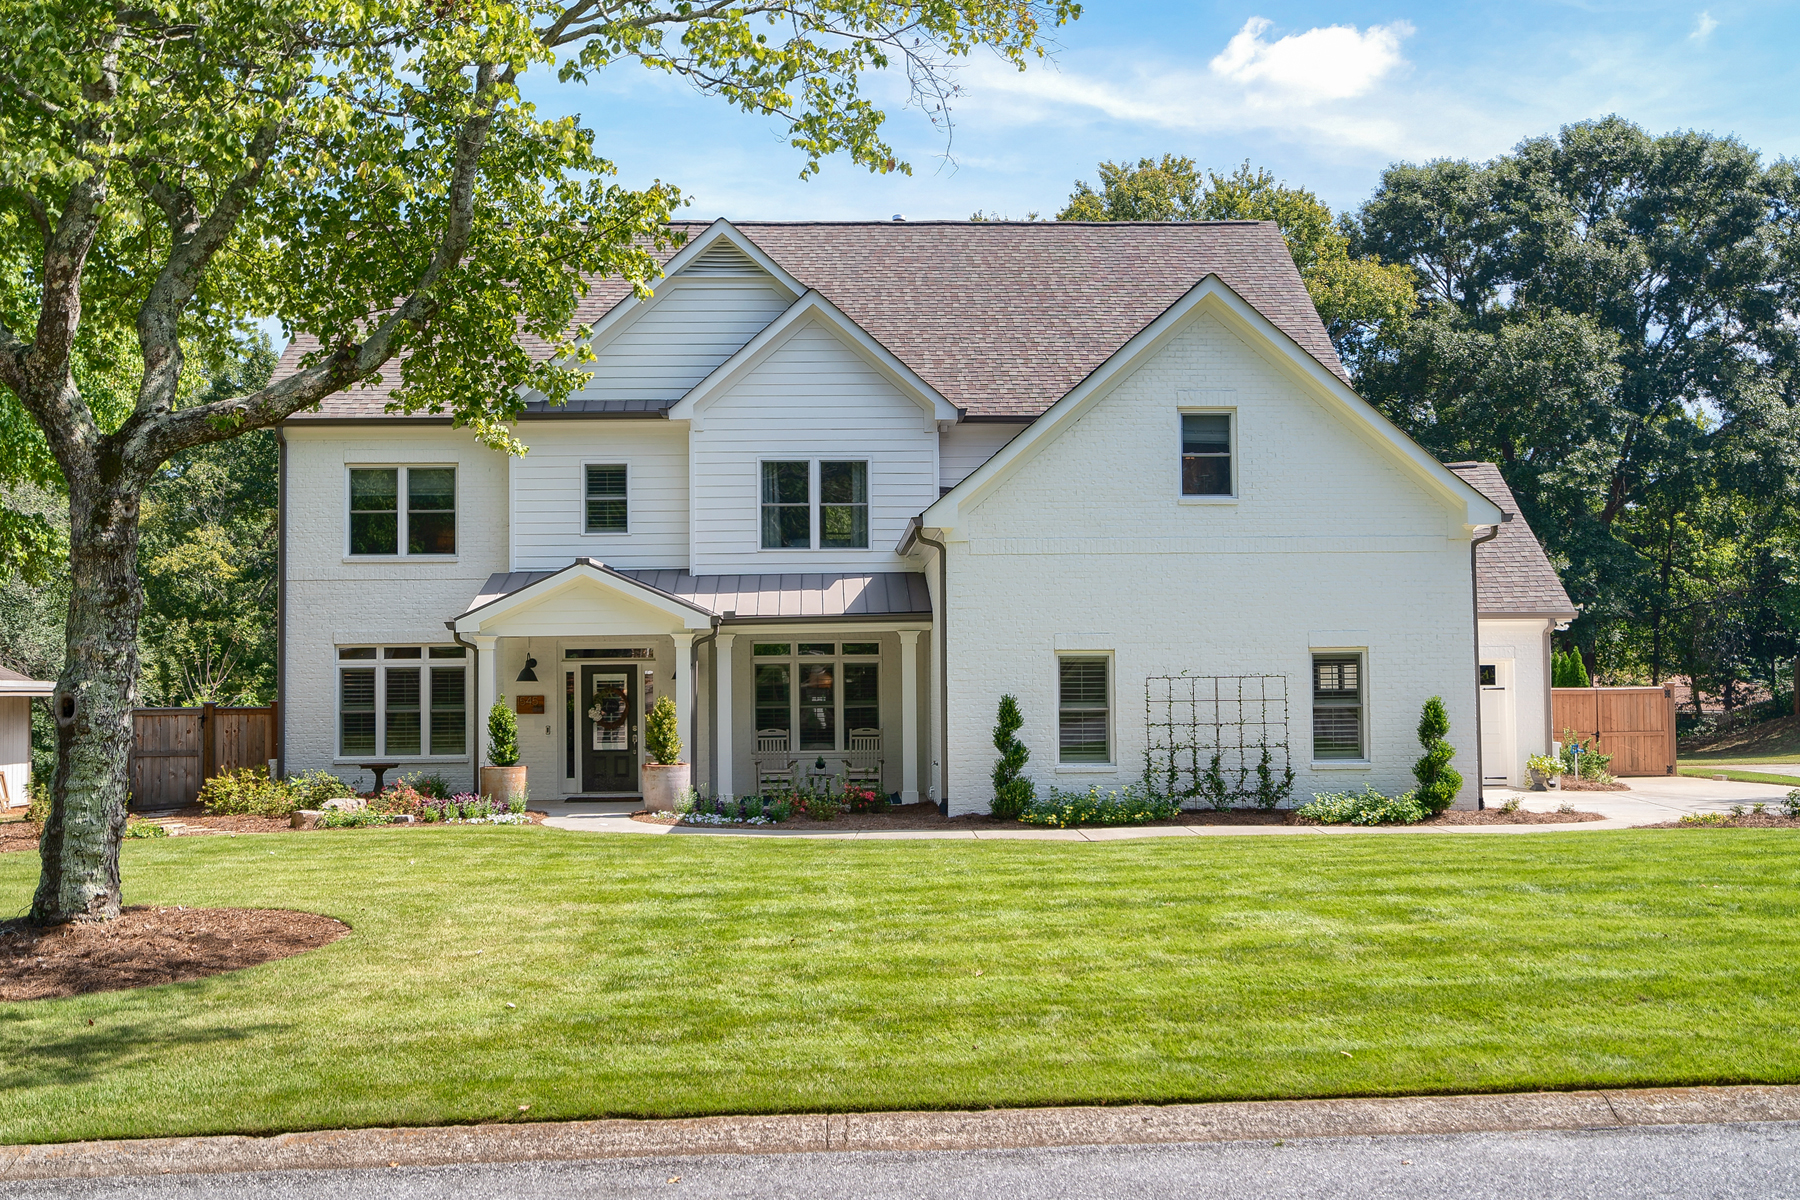 Single Family Home for Sale at Stunning Outdoor Paradise Near Downtown Roswell 1545 Oakfield Ln Roswell, Georgia 30075 United States